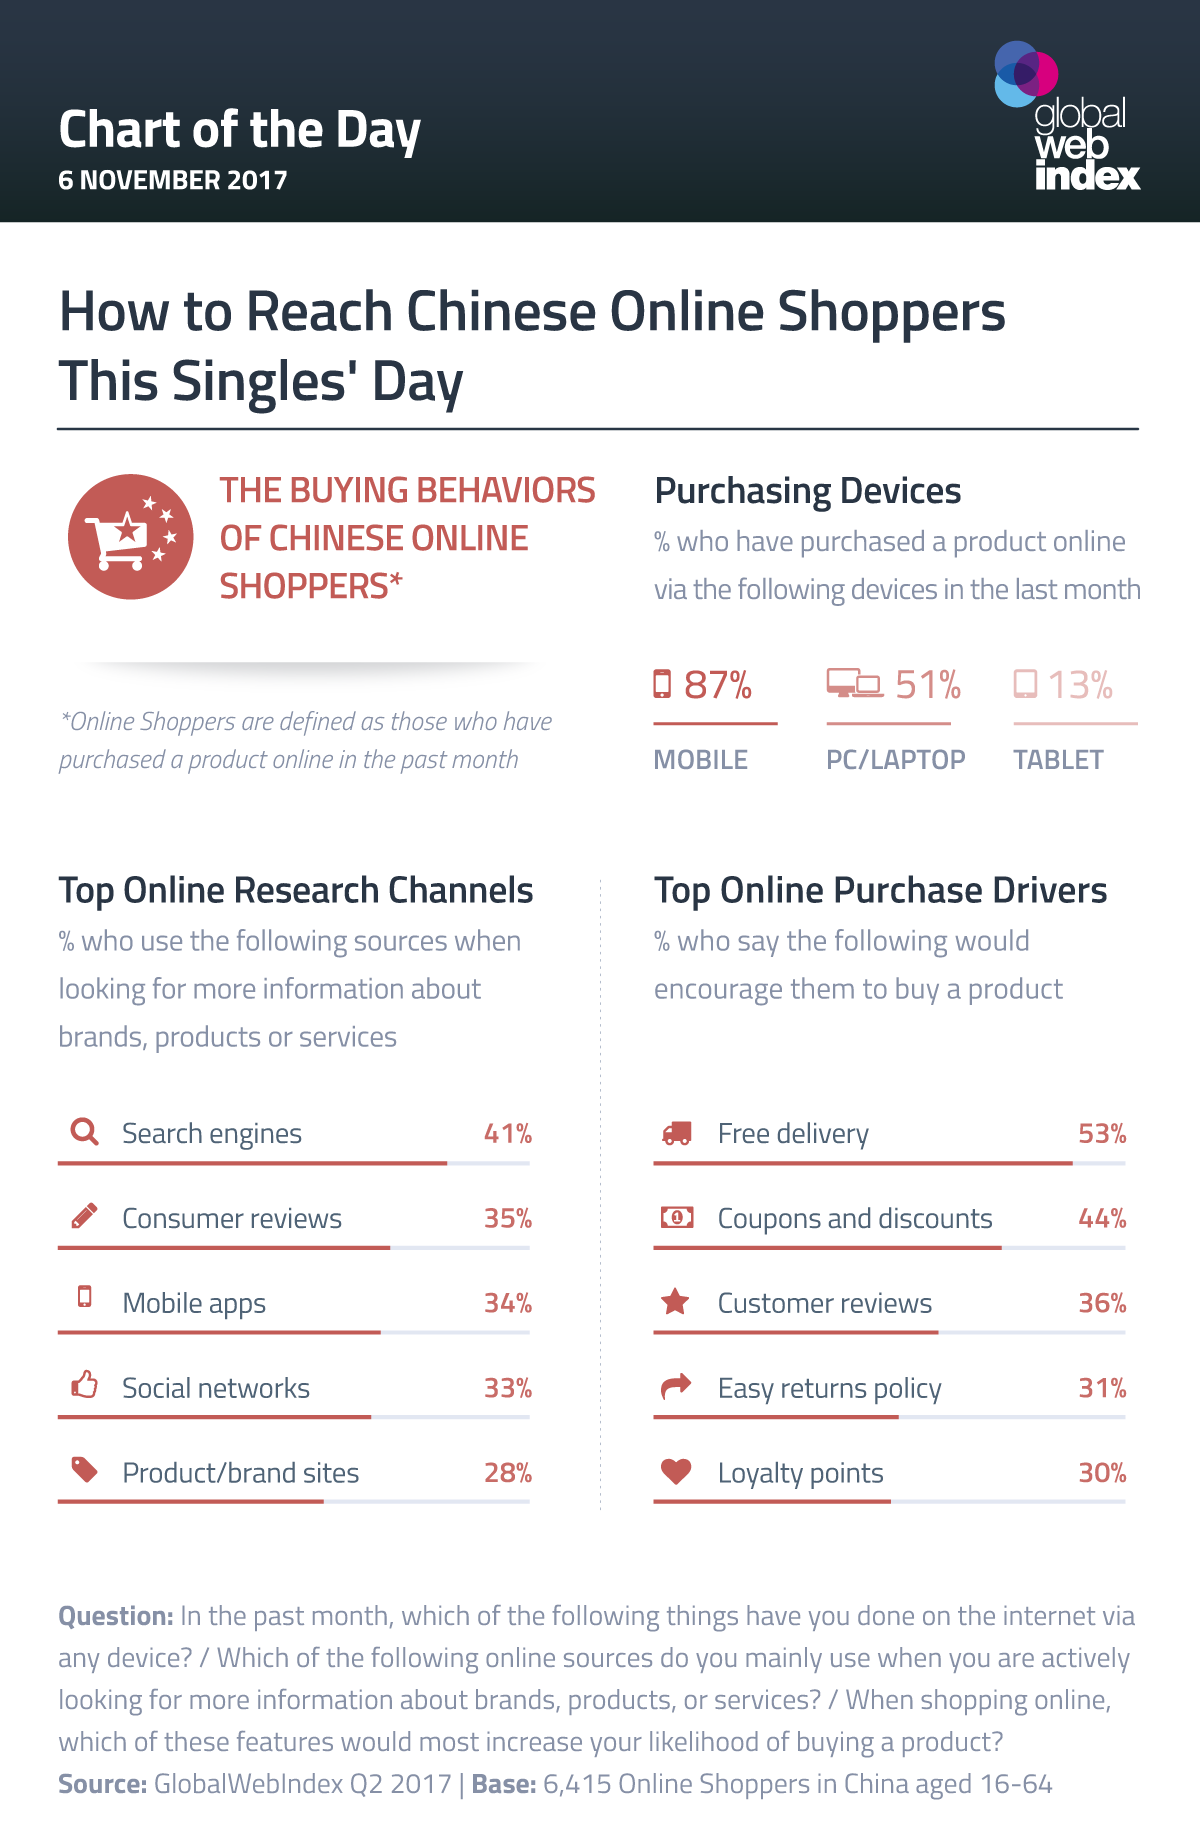 How to Reach Chinese Online Shoppers This Singles' Day